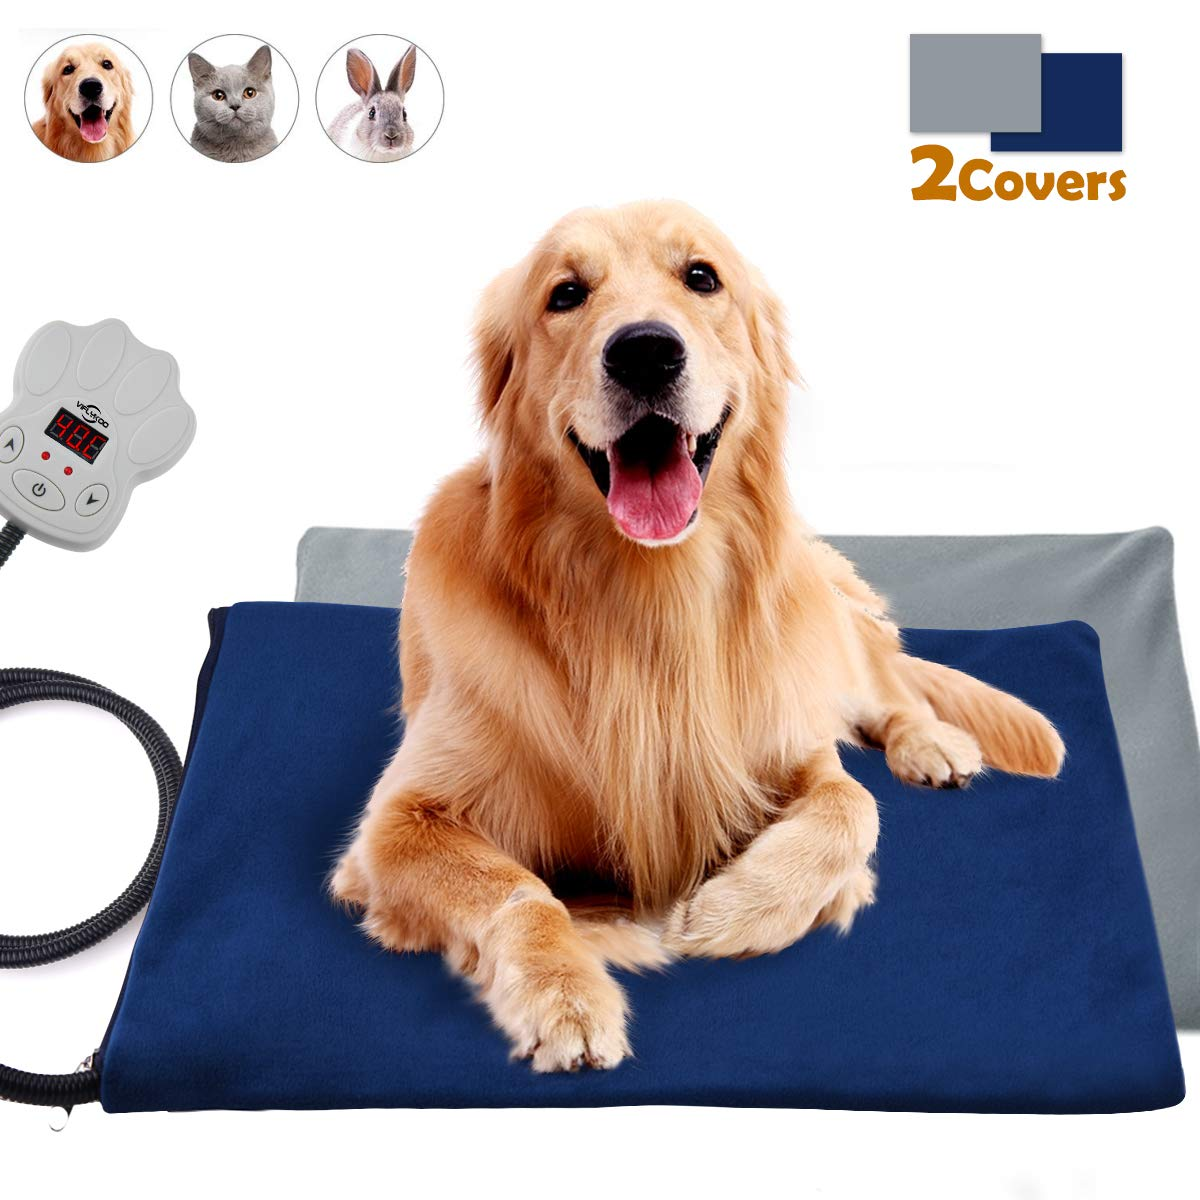 popsky Pet Heating Pads for Dogs & Cats Electric Warming Pet Mat with Chew Resistant Cord & Soft Removable Cover, 7-Level Temperature Setting Adjustable for Pets Animal Bed Warmer Indoor Use, 2 Covers